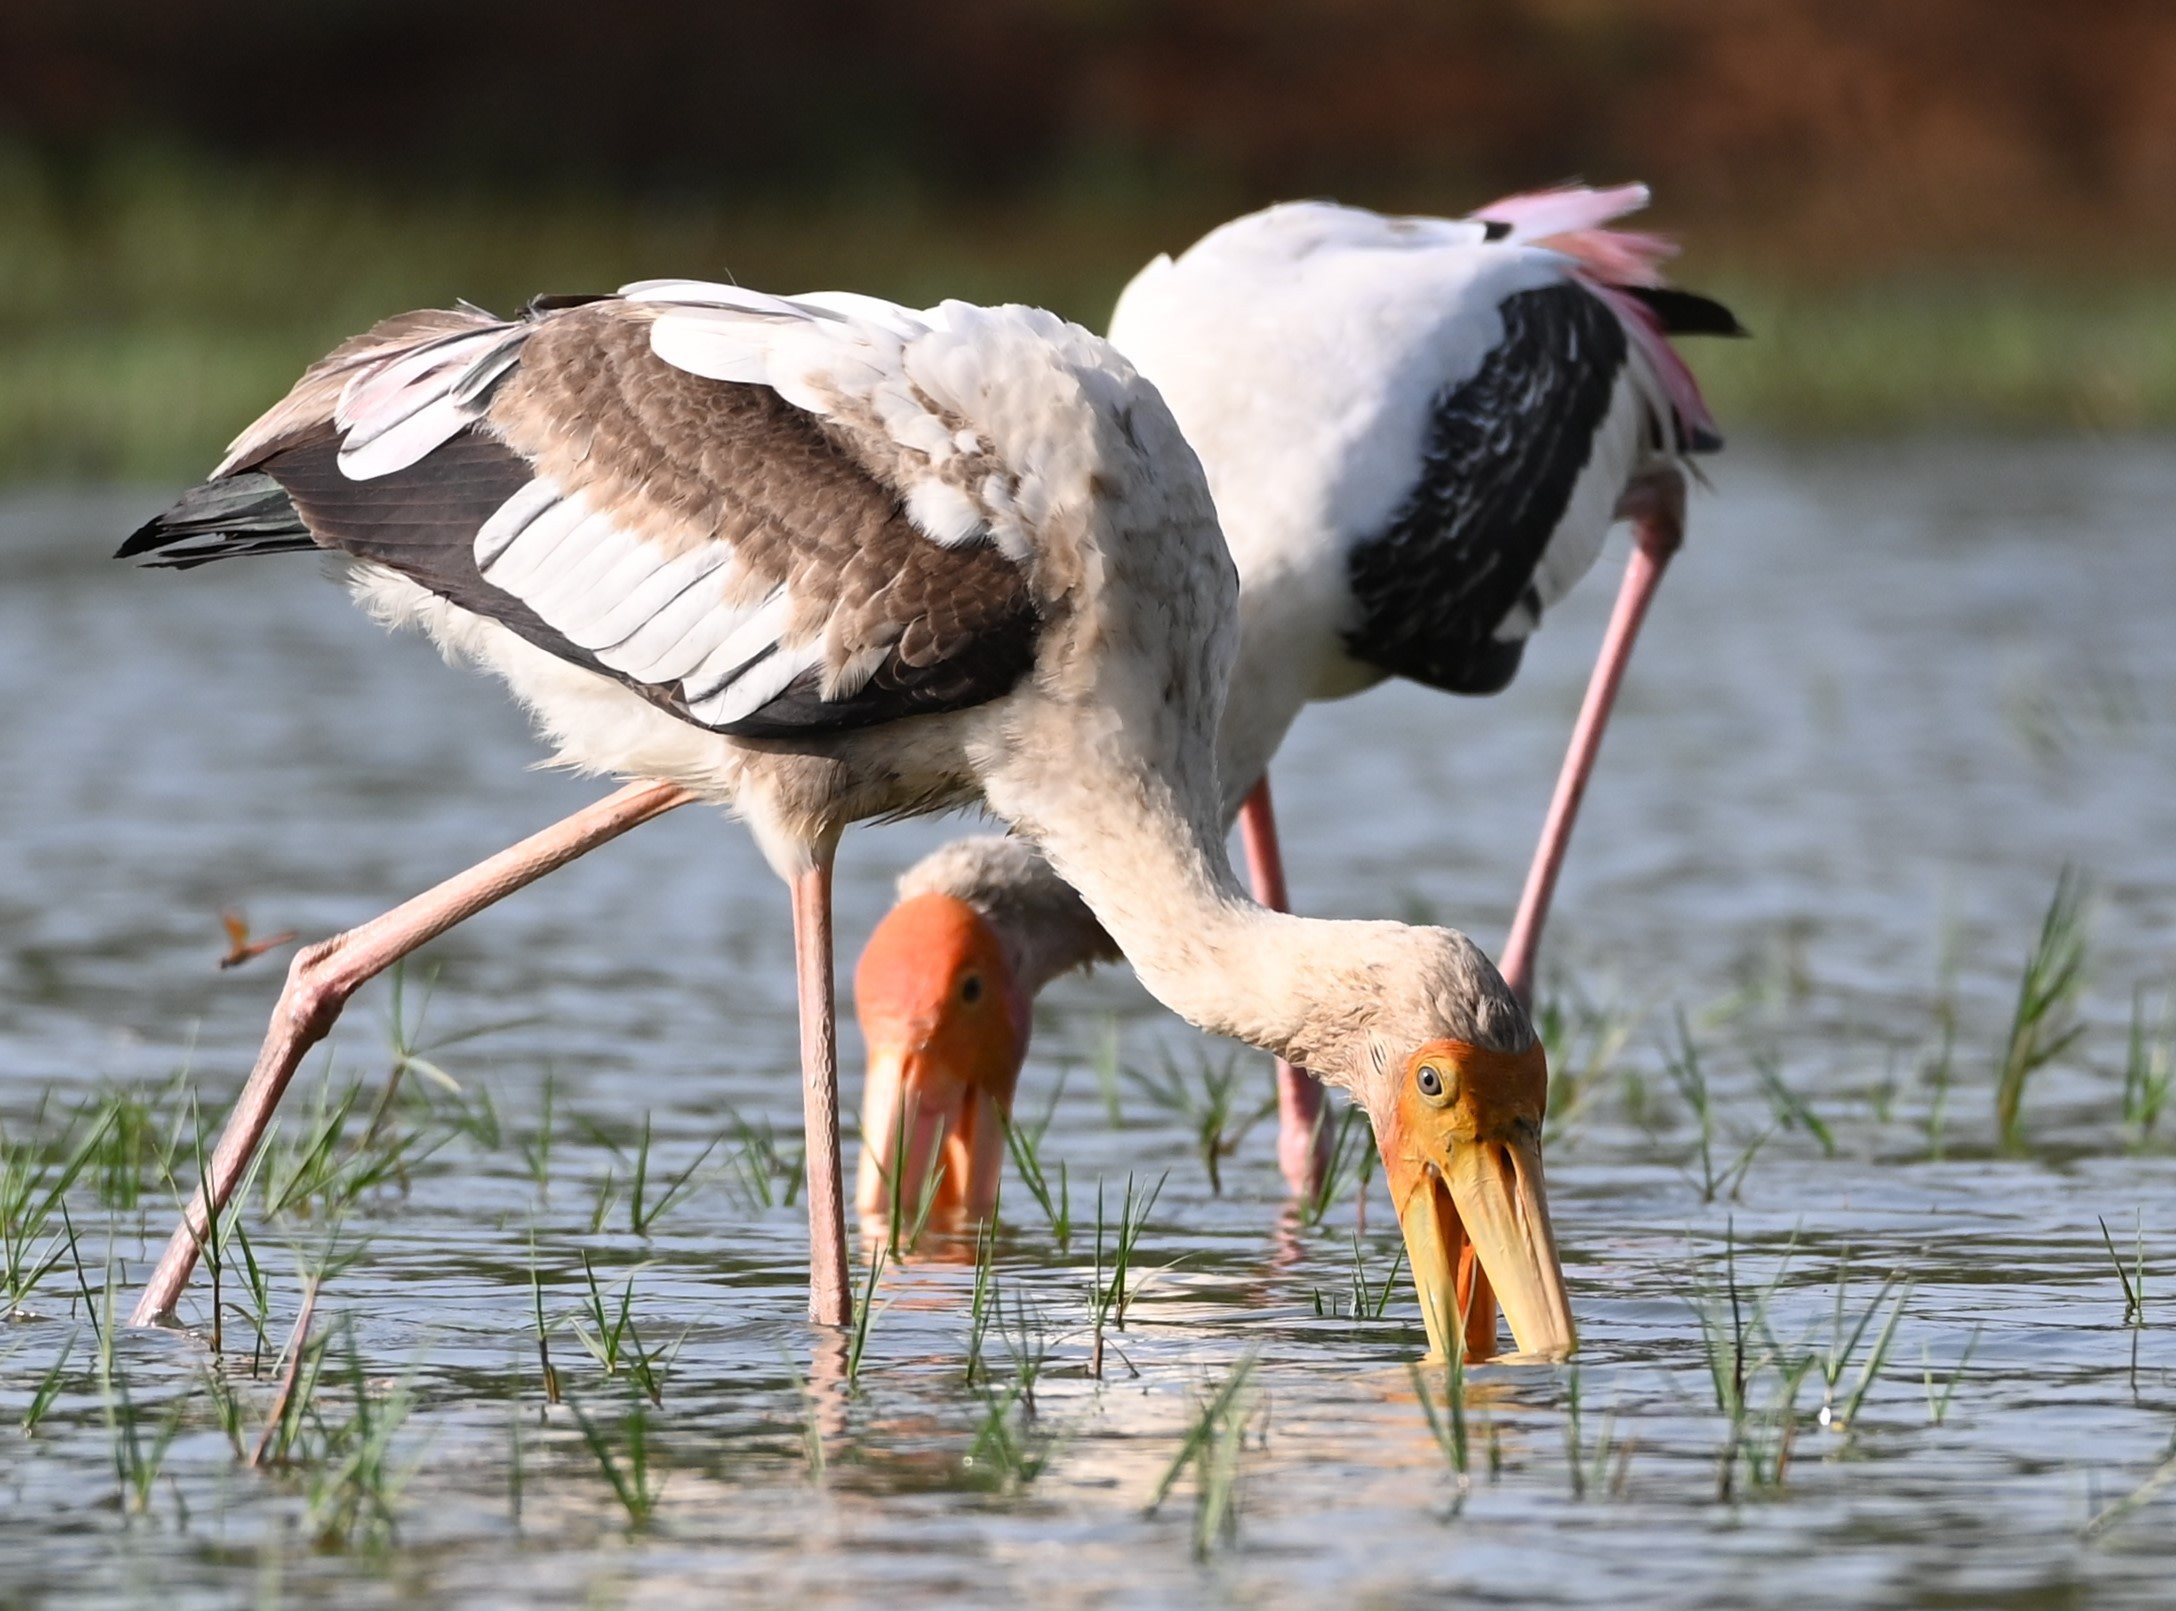 Painted storks hold their bills open underwater, waiting for the movement of prey. When they feel a fish touch the beak, they snap it shut.